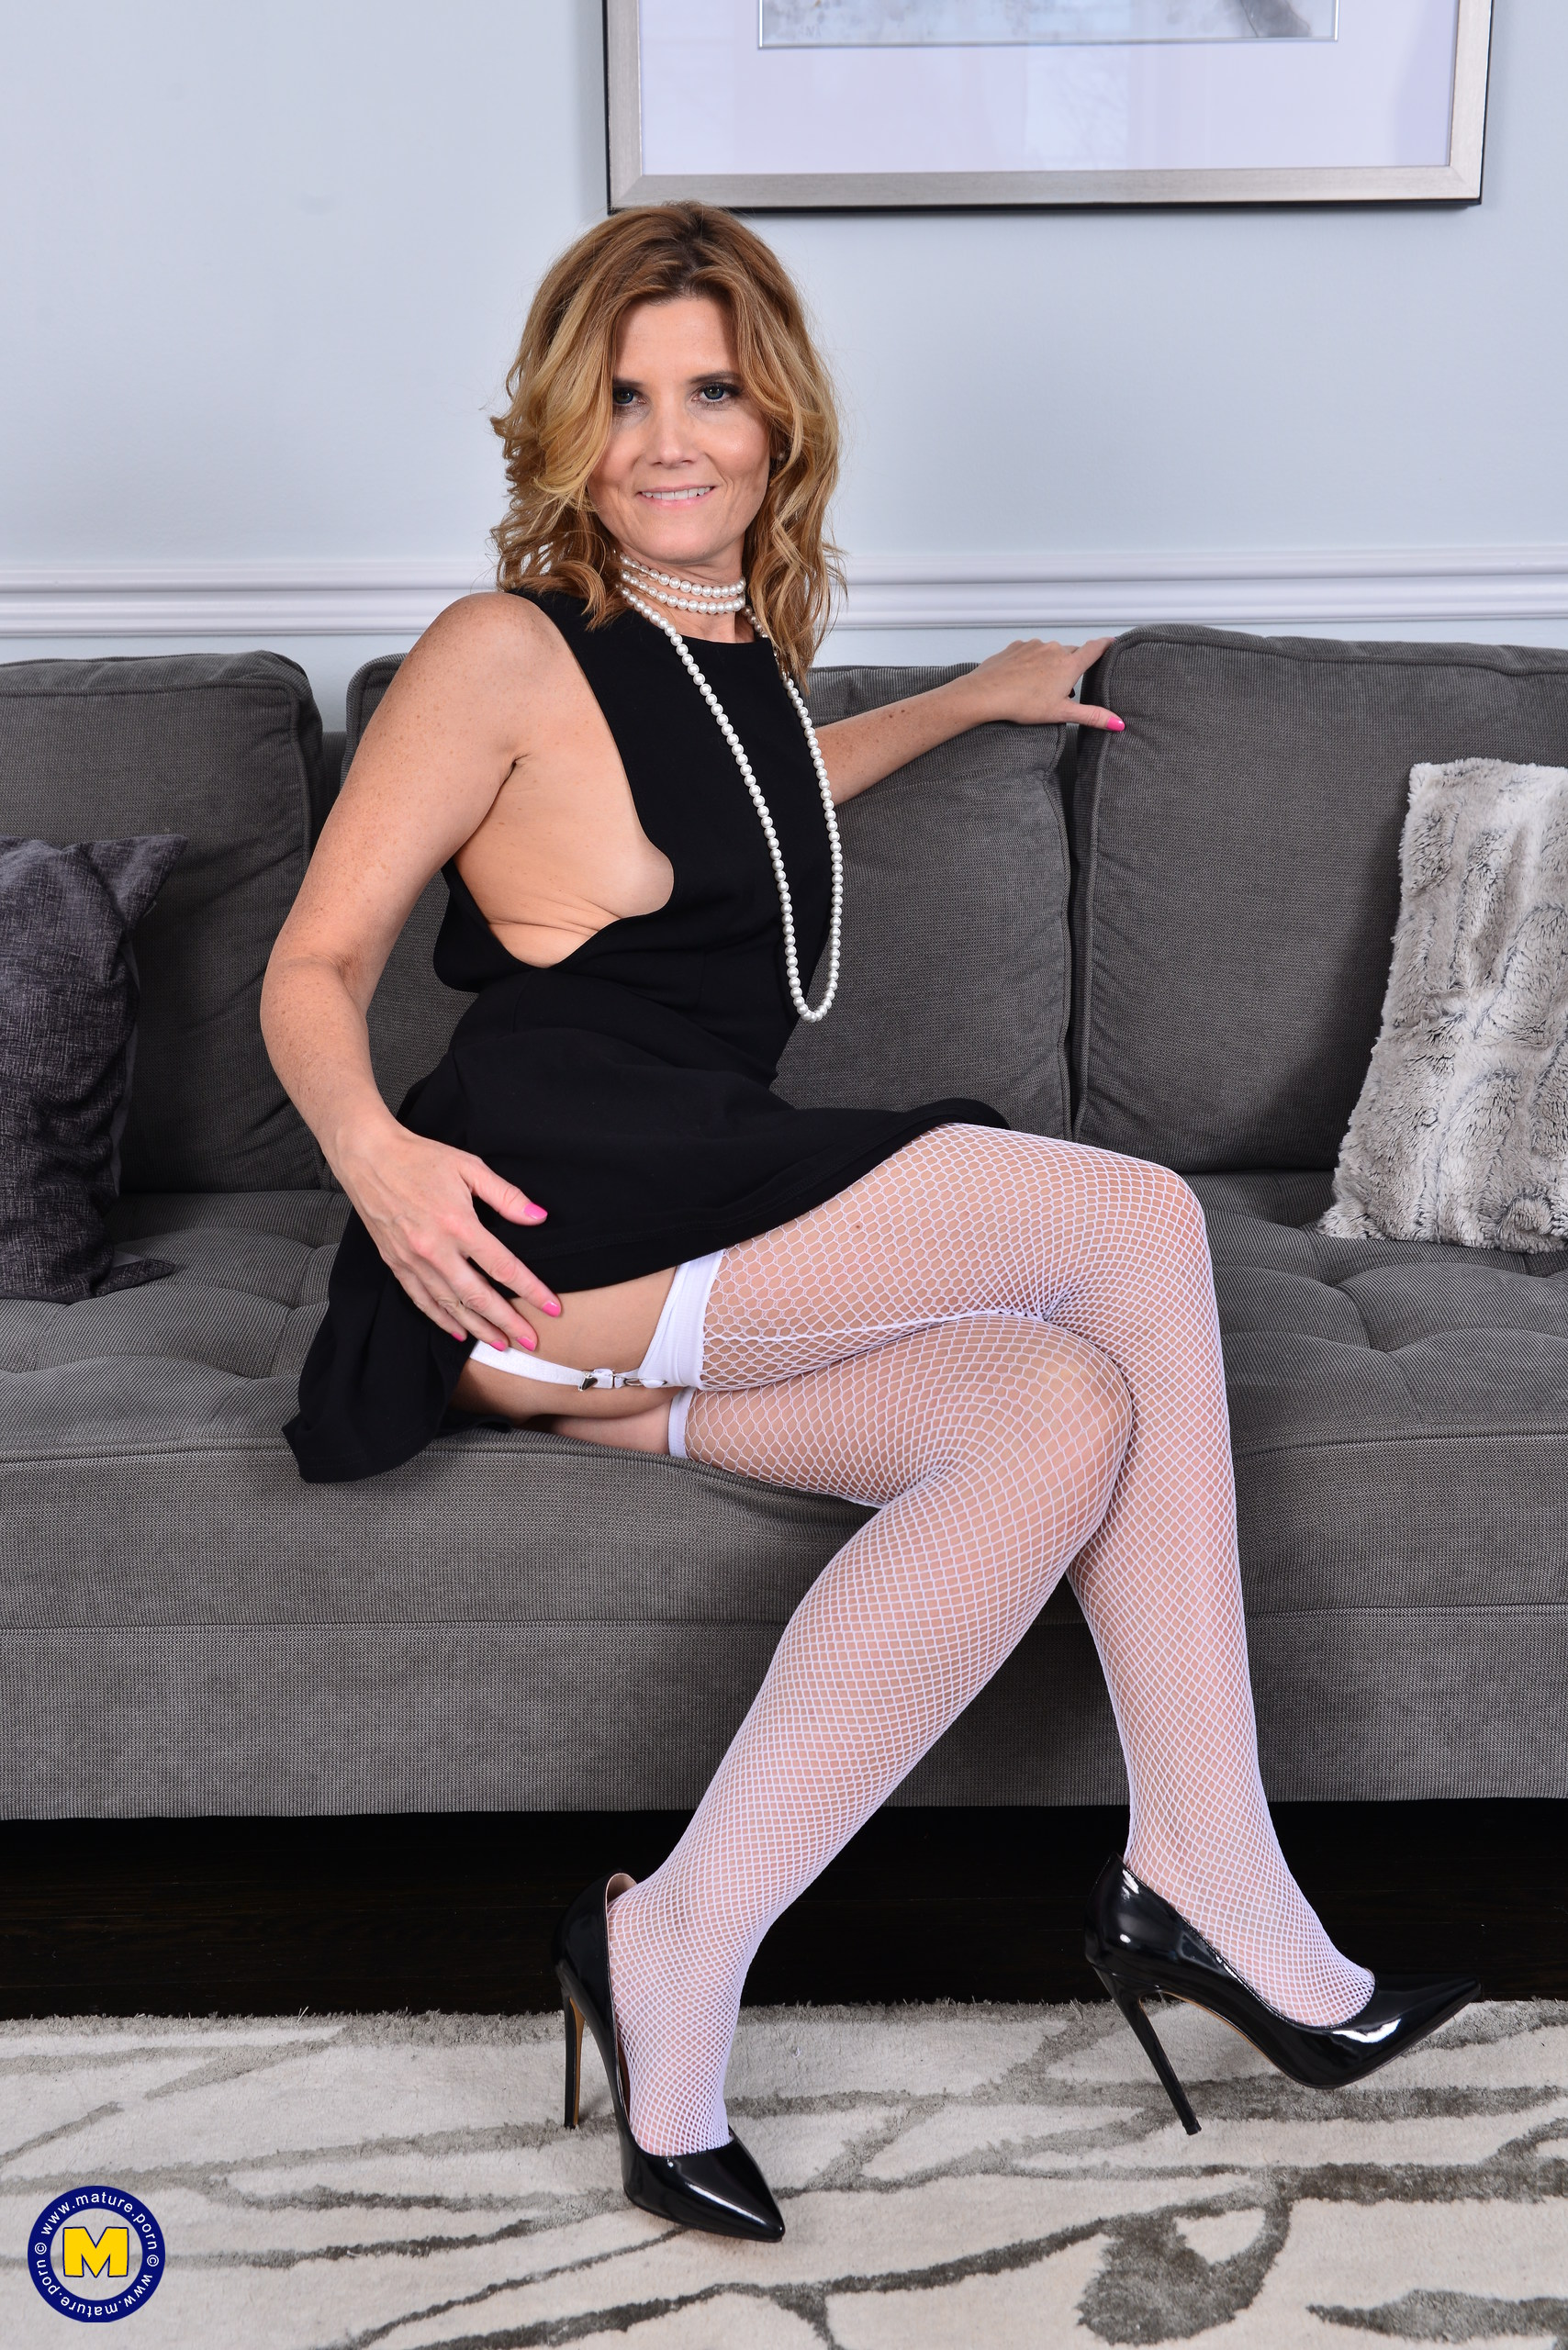 American Milf Nude glamour images | alby daor naked galleries and videos